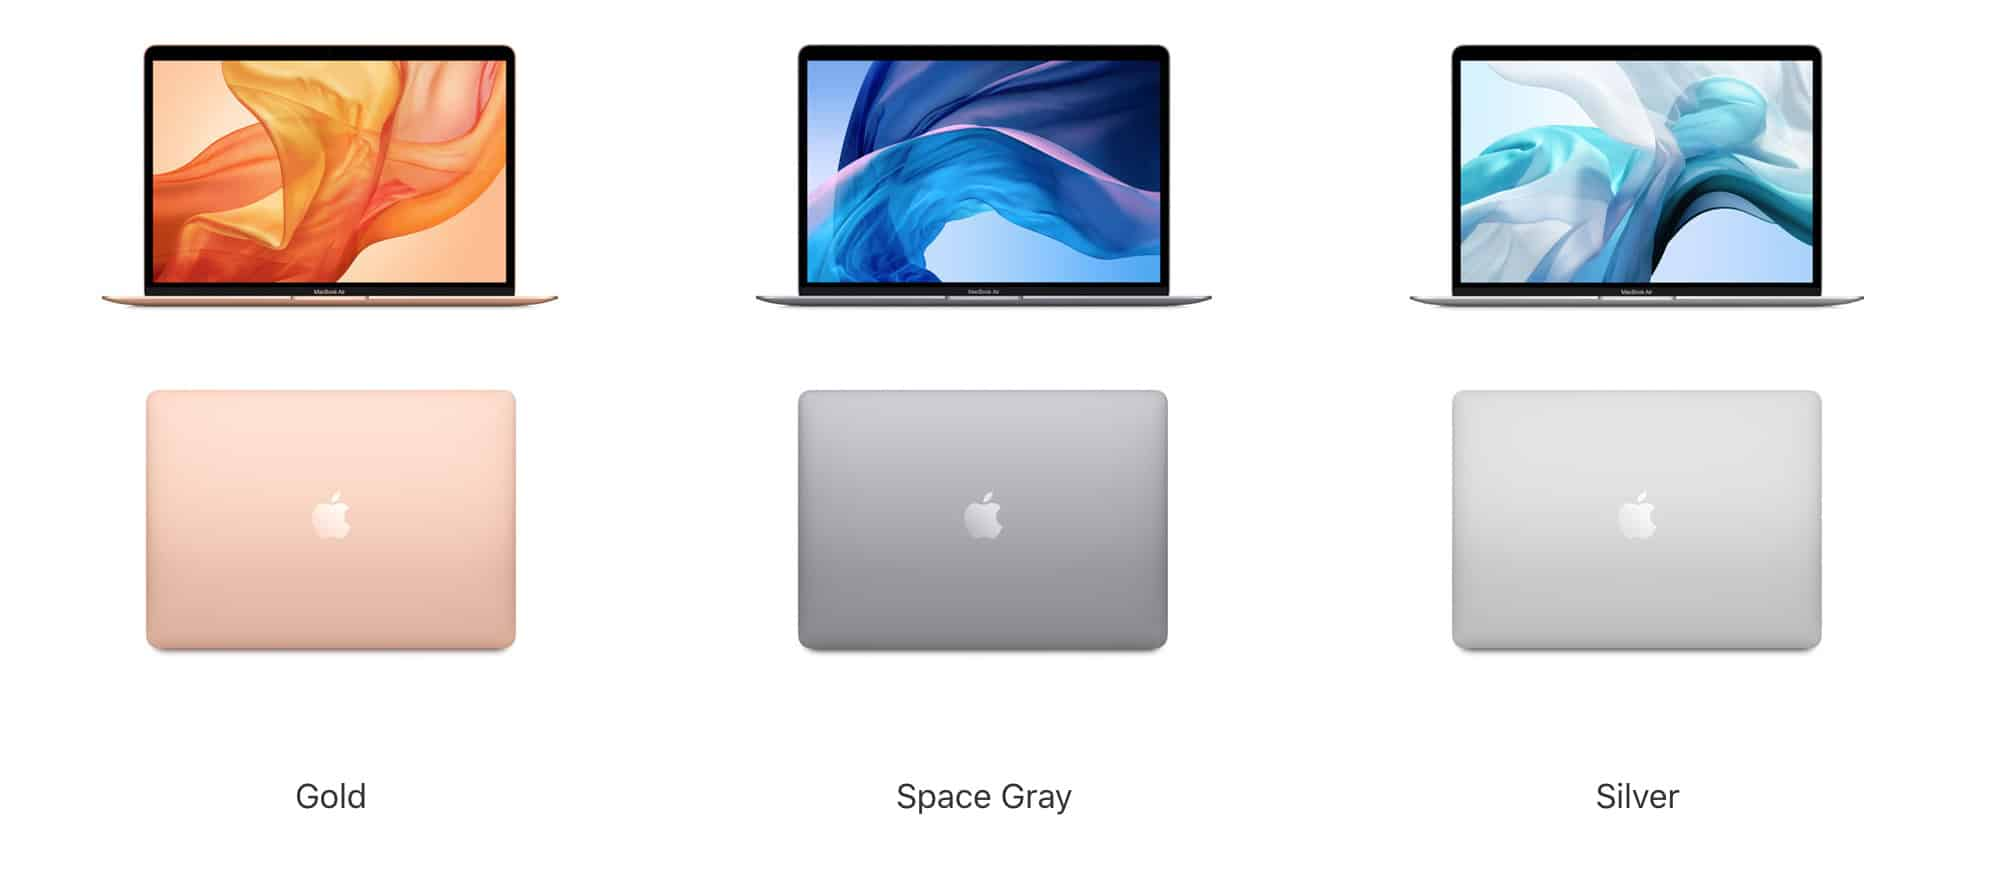 color-macbook-air-2020-laptopvang.com